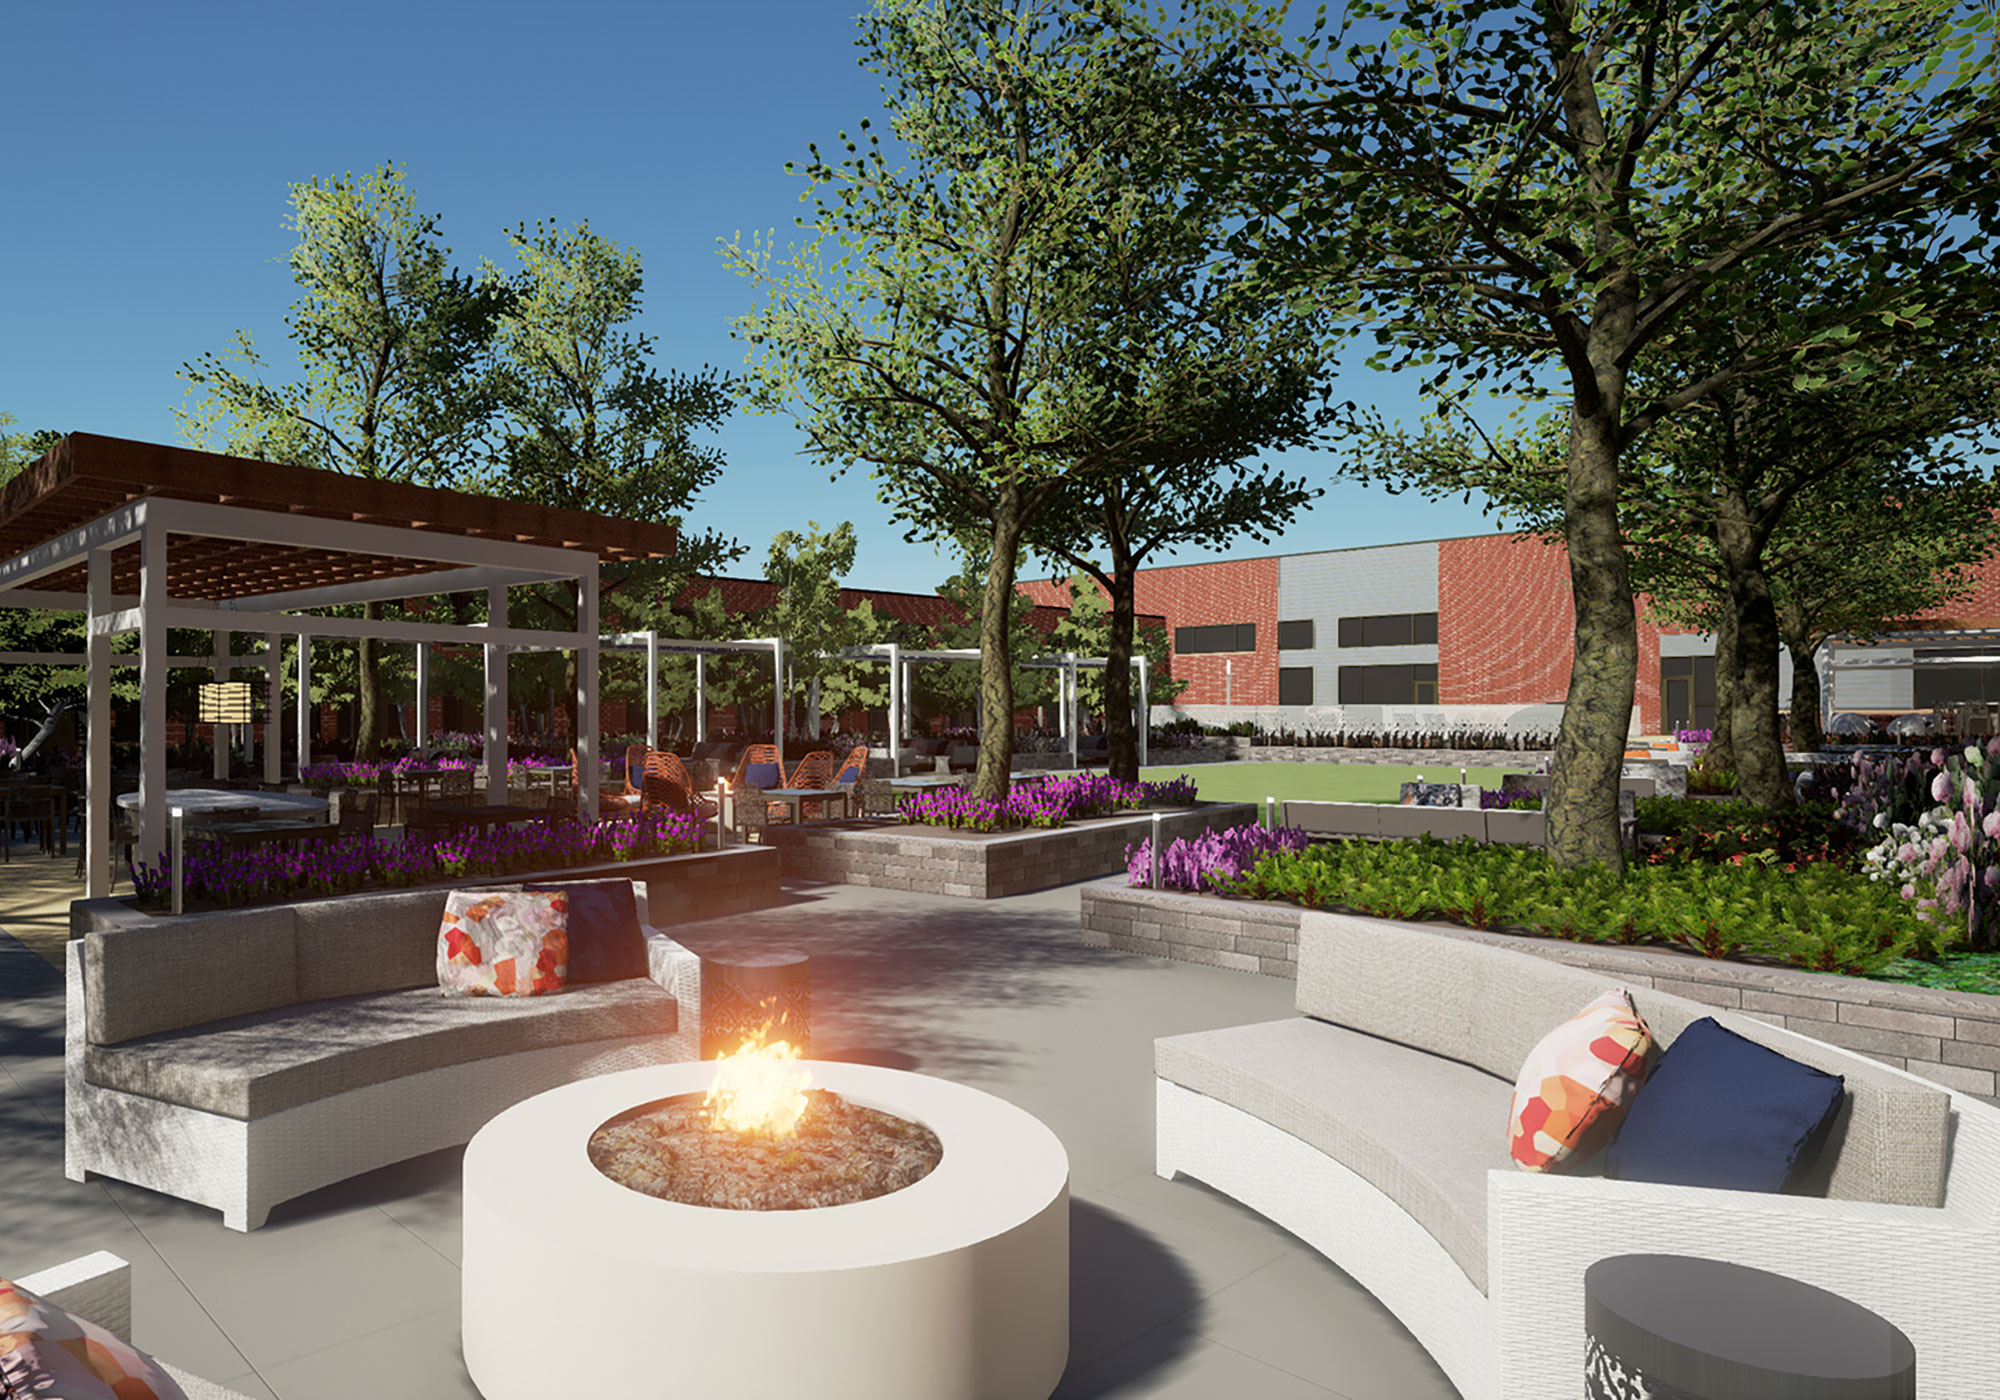 Rendering of outside common area